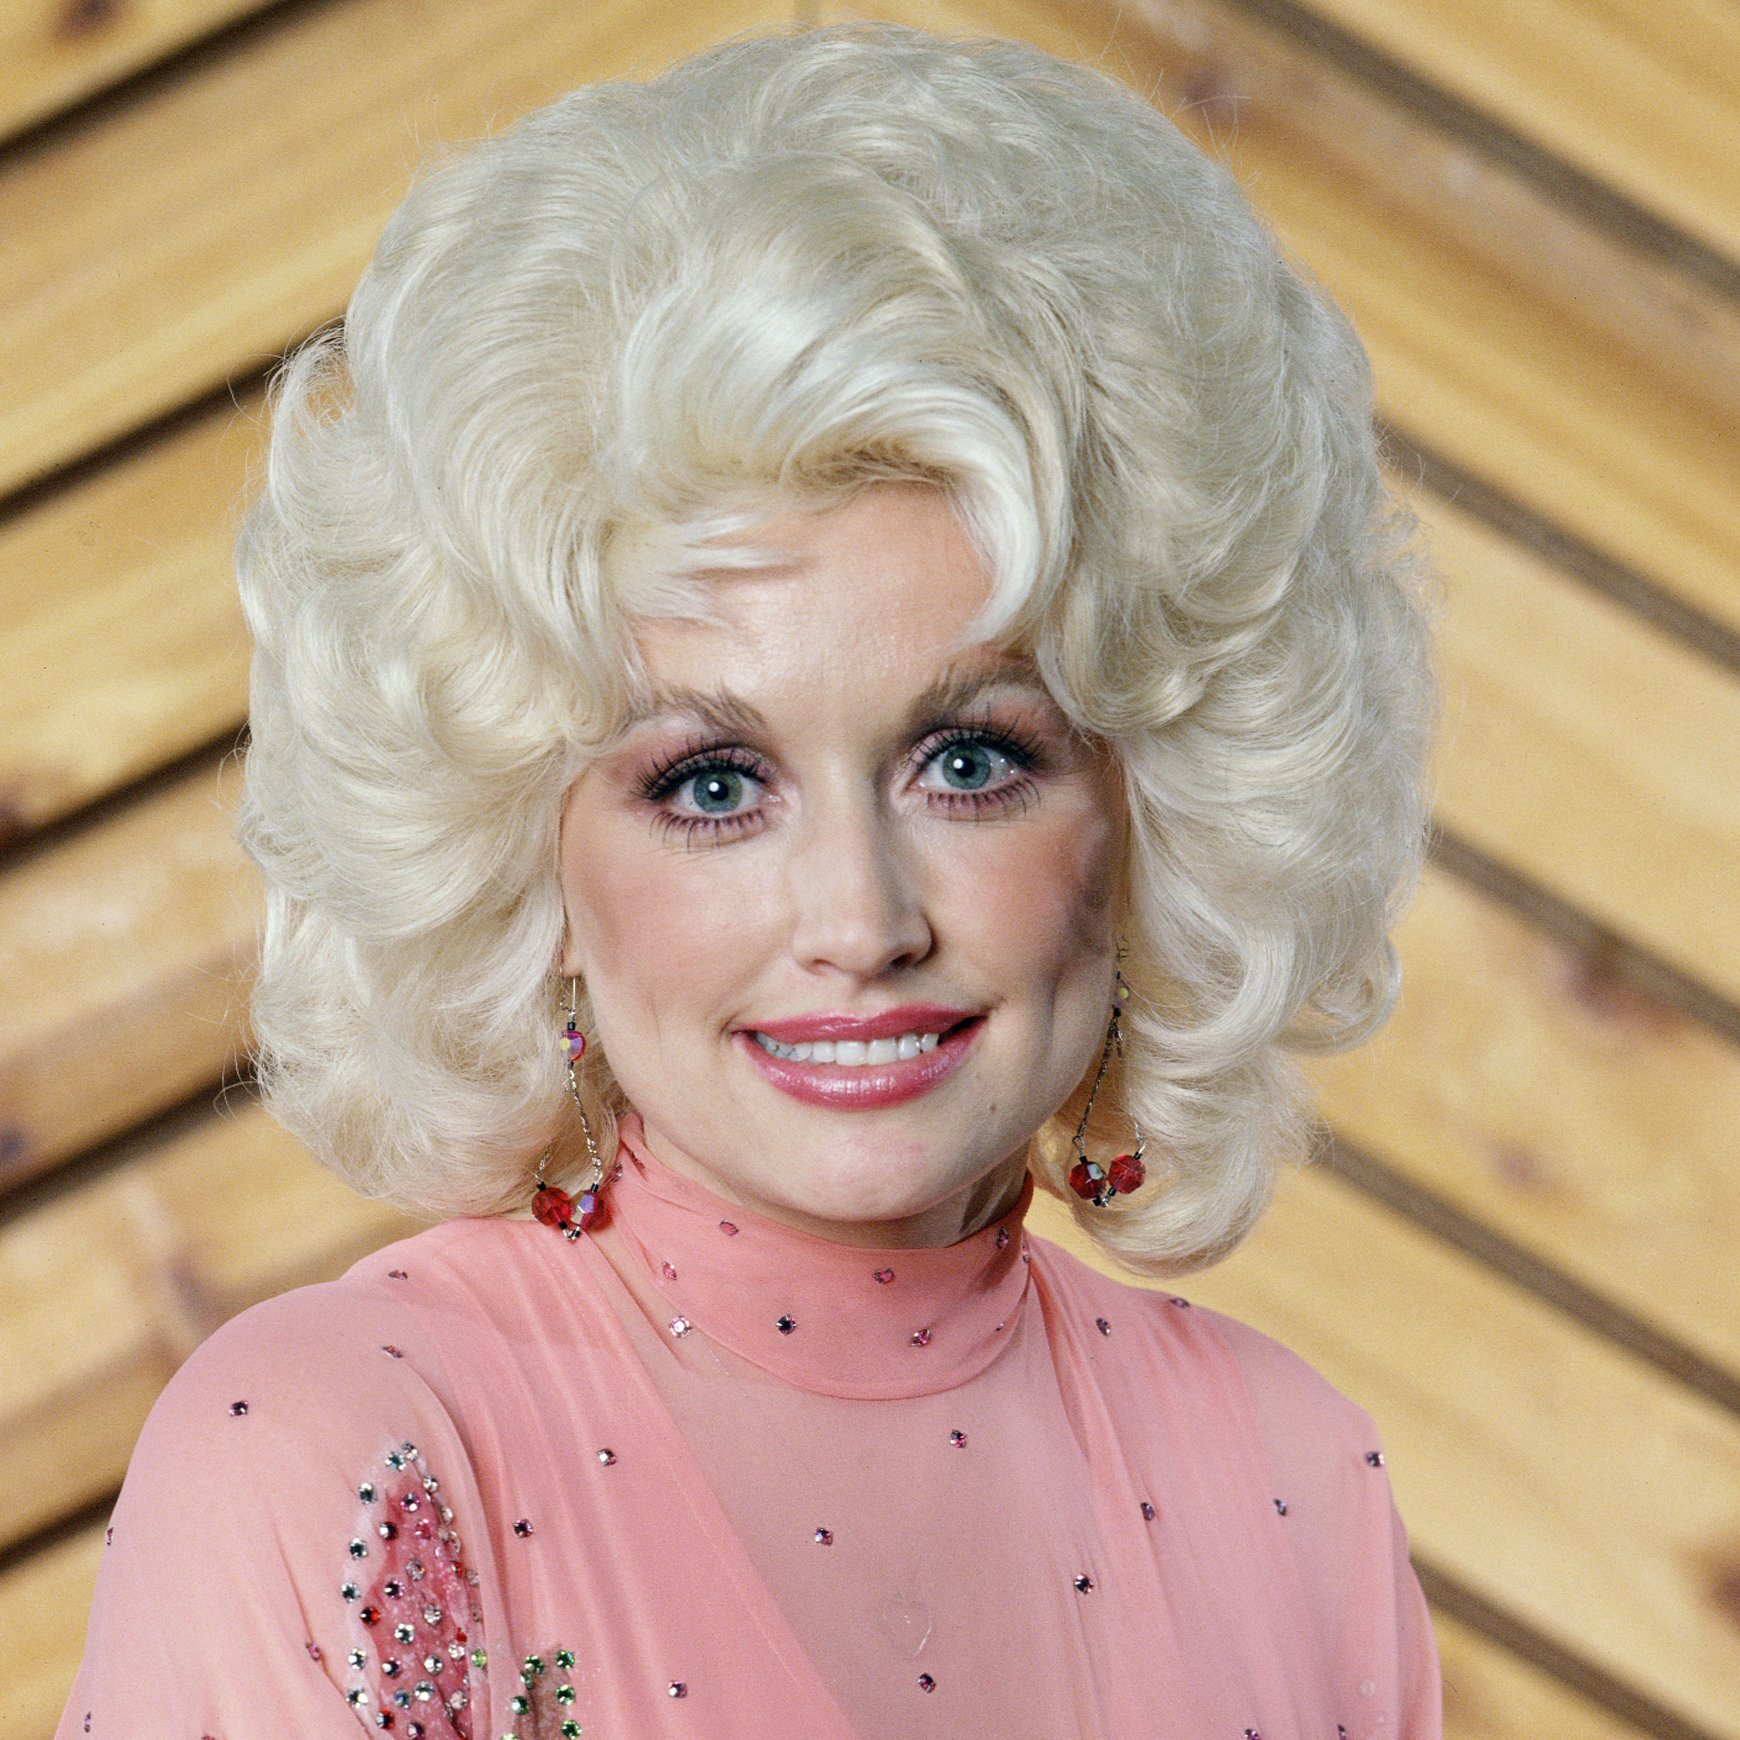 1 216 Sparkling Facts About Dolly Parton, The Rhinestone Queen of Tennessee